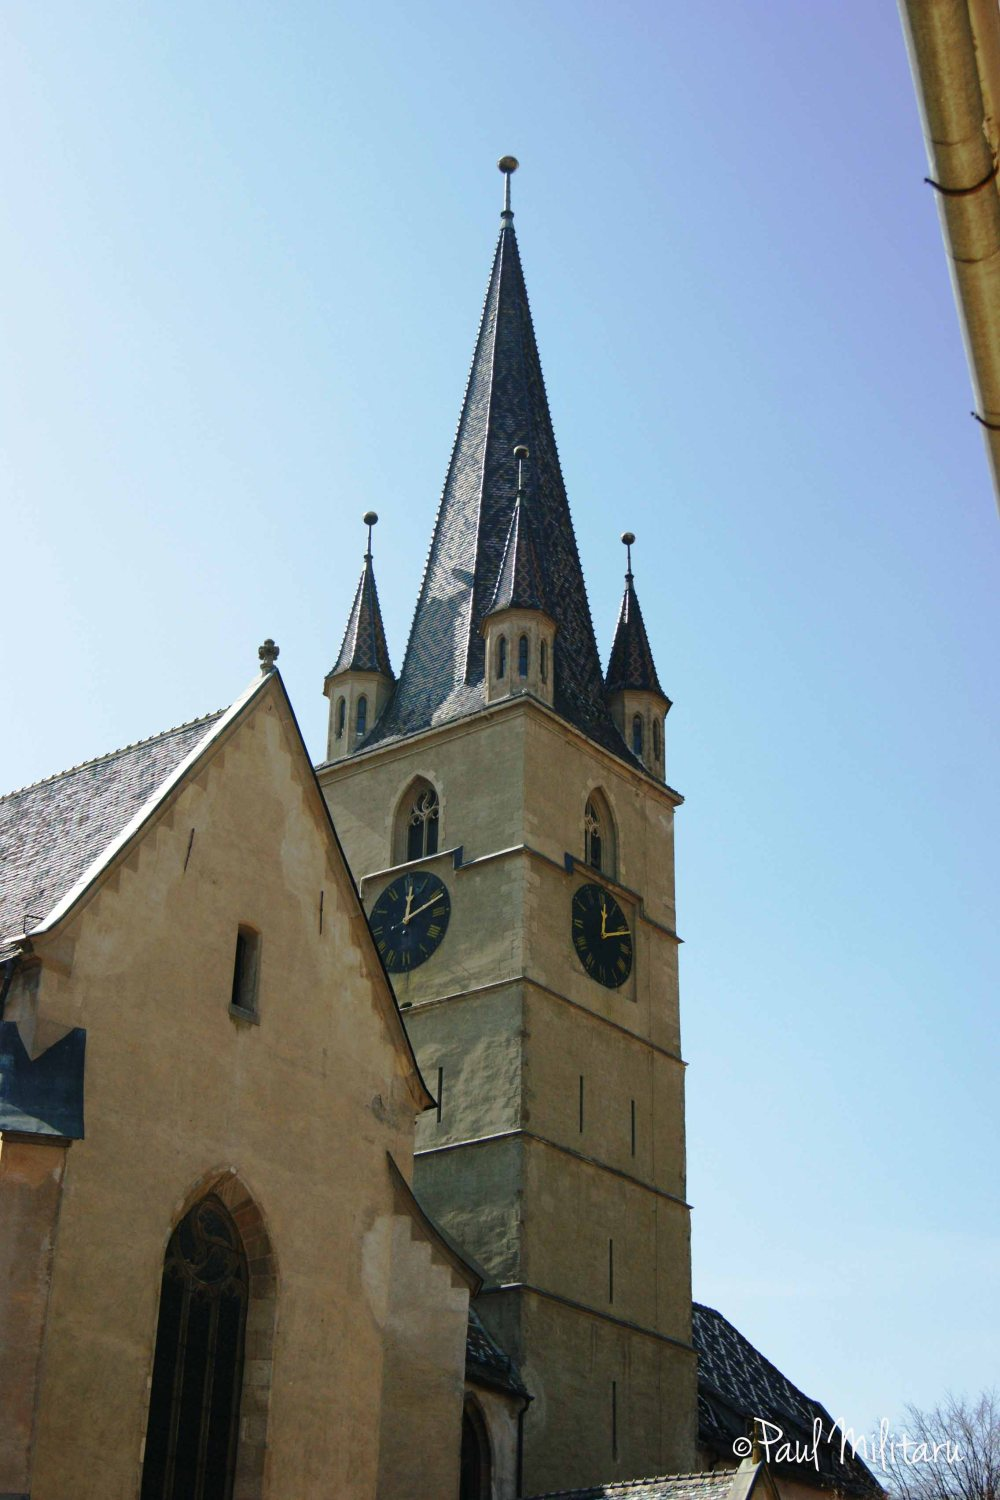 Tower of the Evangelical Church in Sibiu